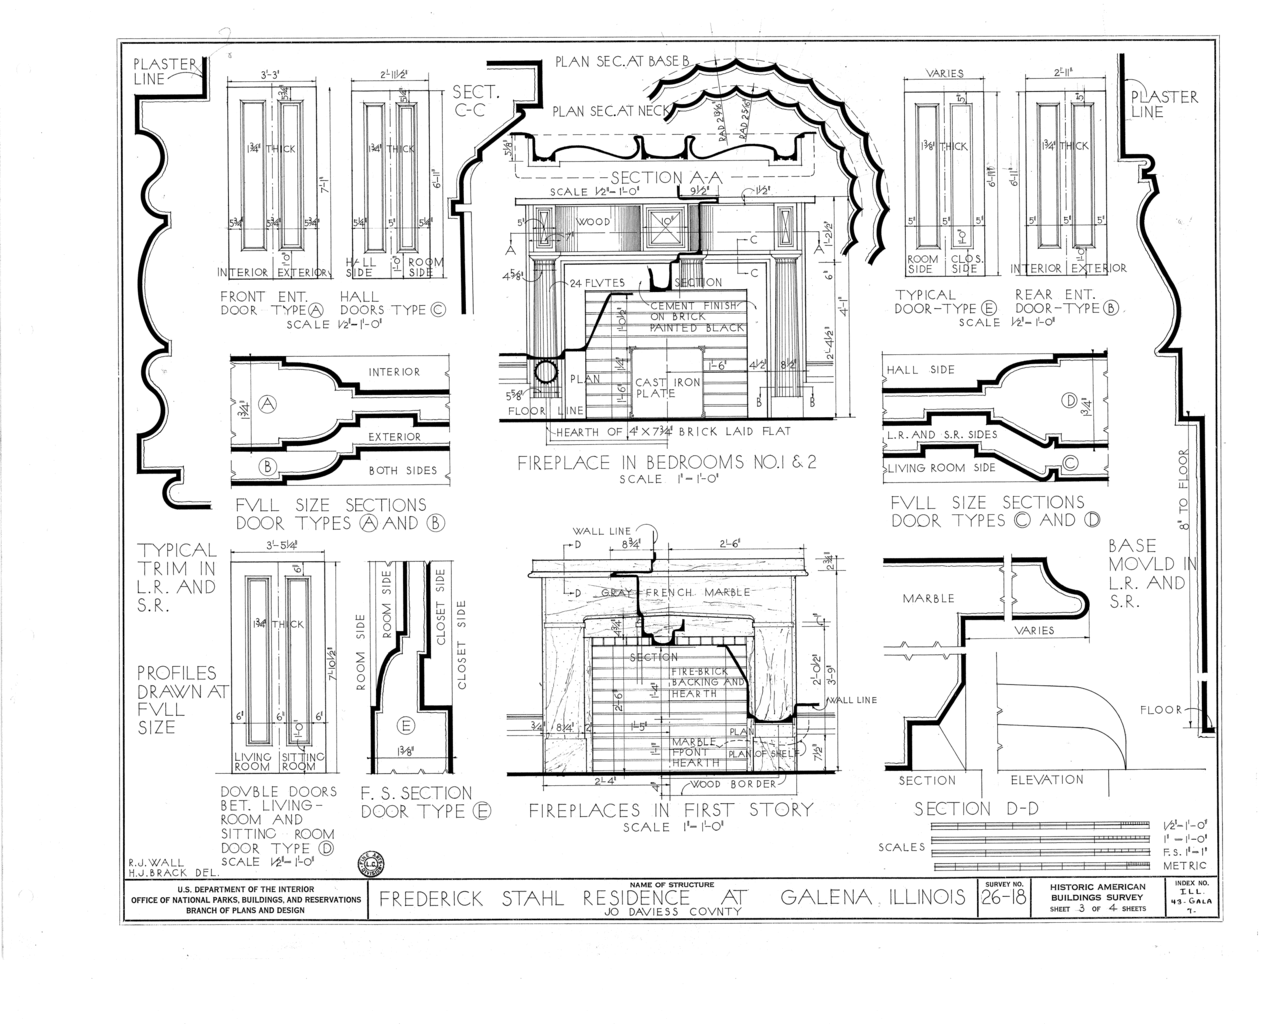 File:Frederick Stahl House, 605 South Bench Street, Galena ... on john sowden house floor plan, capitol records building floor plan, case study house 22 floor plan, lee house floor plan, holland house floor plan, henderson house floor plan, ash house floor plan, hollywood and highland center floor plan, case study house 21 floor plan, ross house floor plan, montgomery house floor plan, stone house floor plan, storer house floor plan, hollyhock house floor plan, eames house second floor plan, h-shaped home floor plan, montana log homes floor plan, geisel library floor plan, schwartz house floor plan, anderson house floor plan,